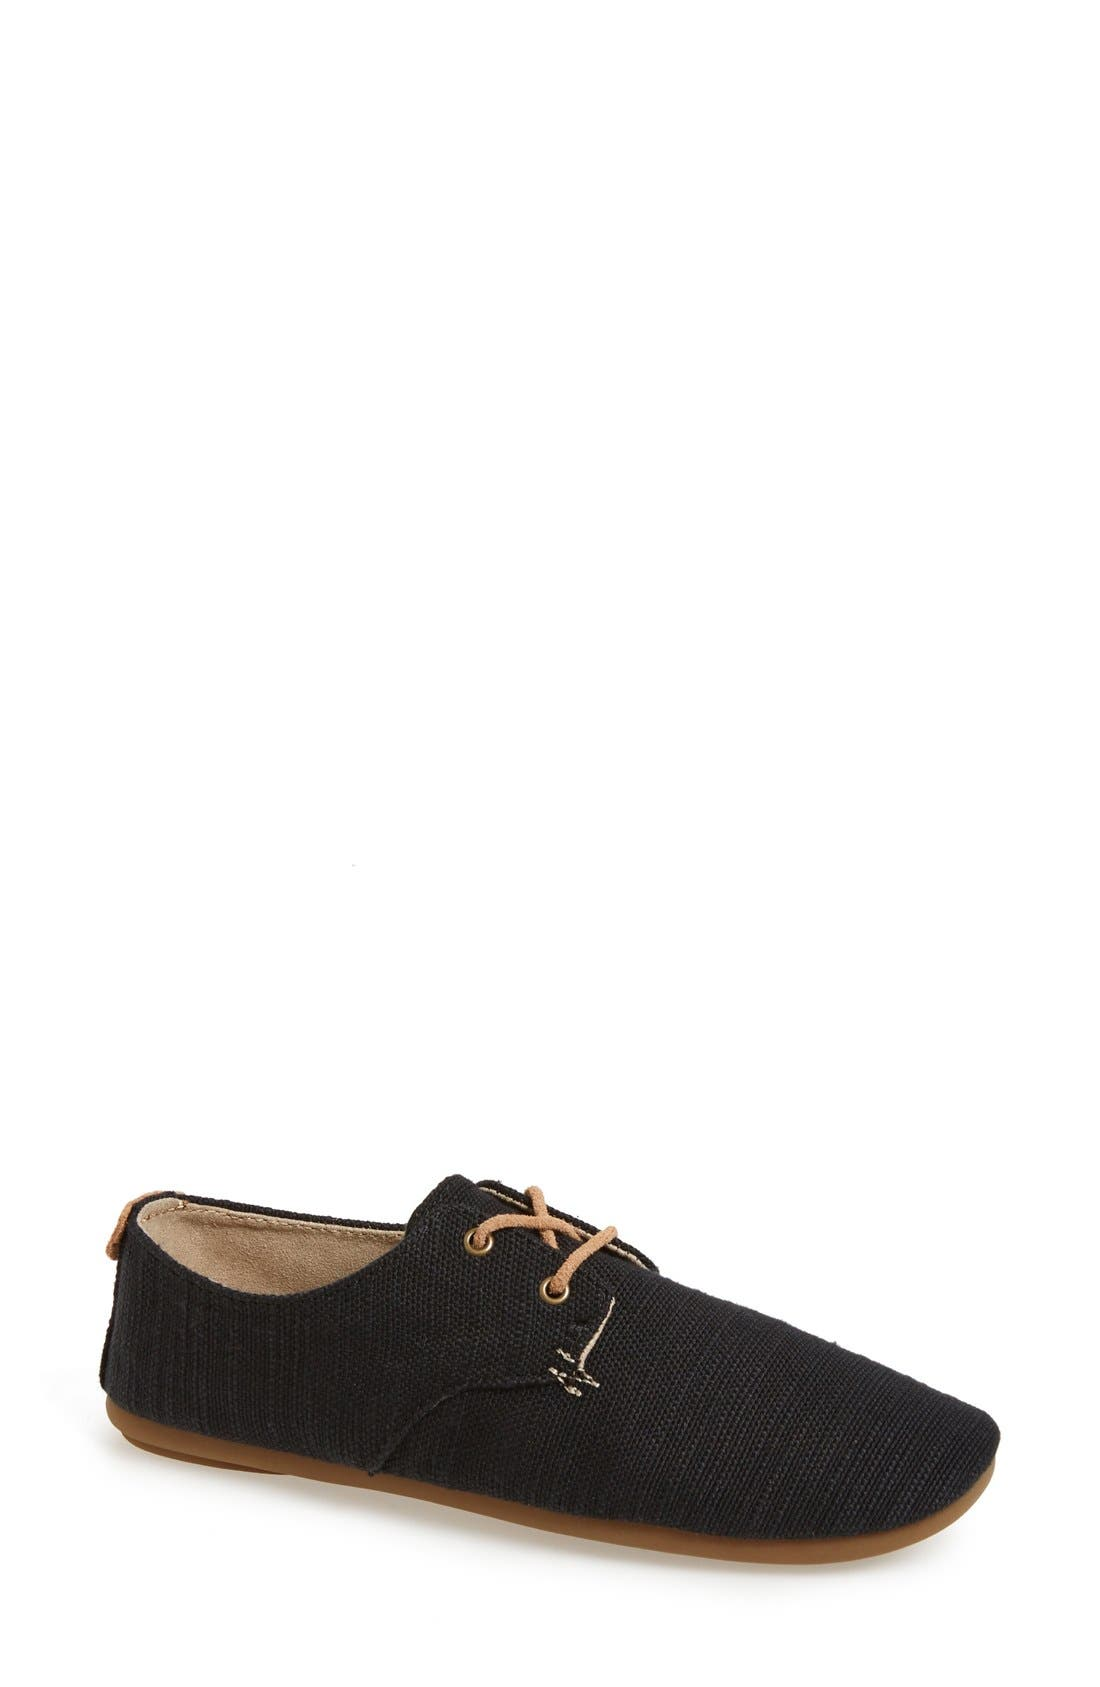 'Bianca' Oxford Flat,                         Main,                         color, 002